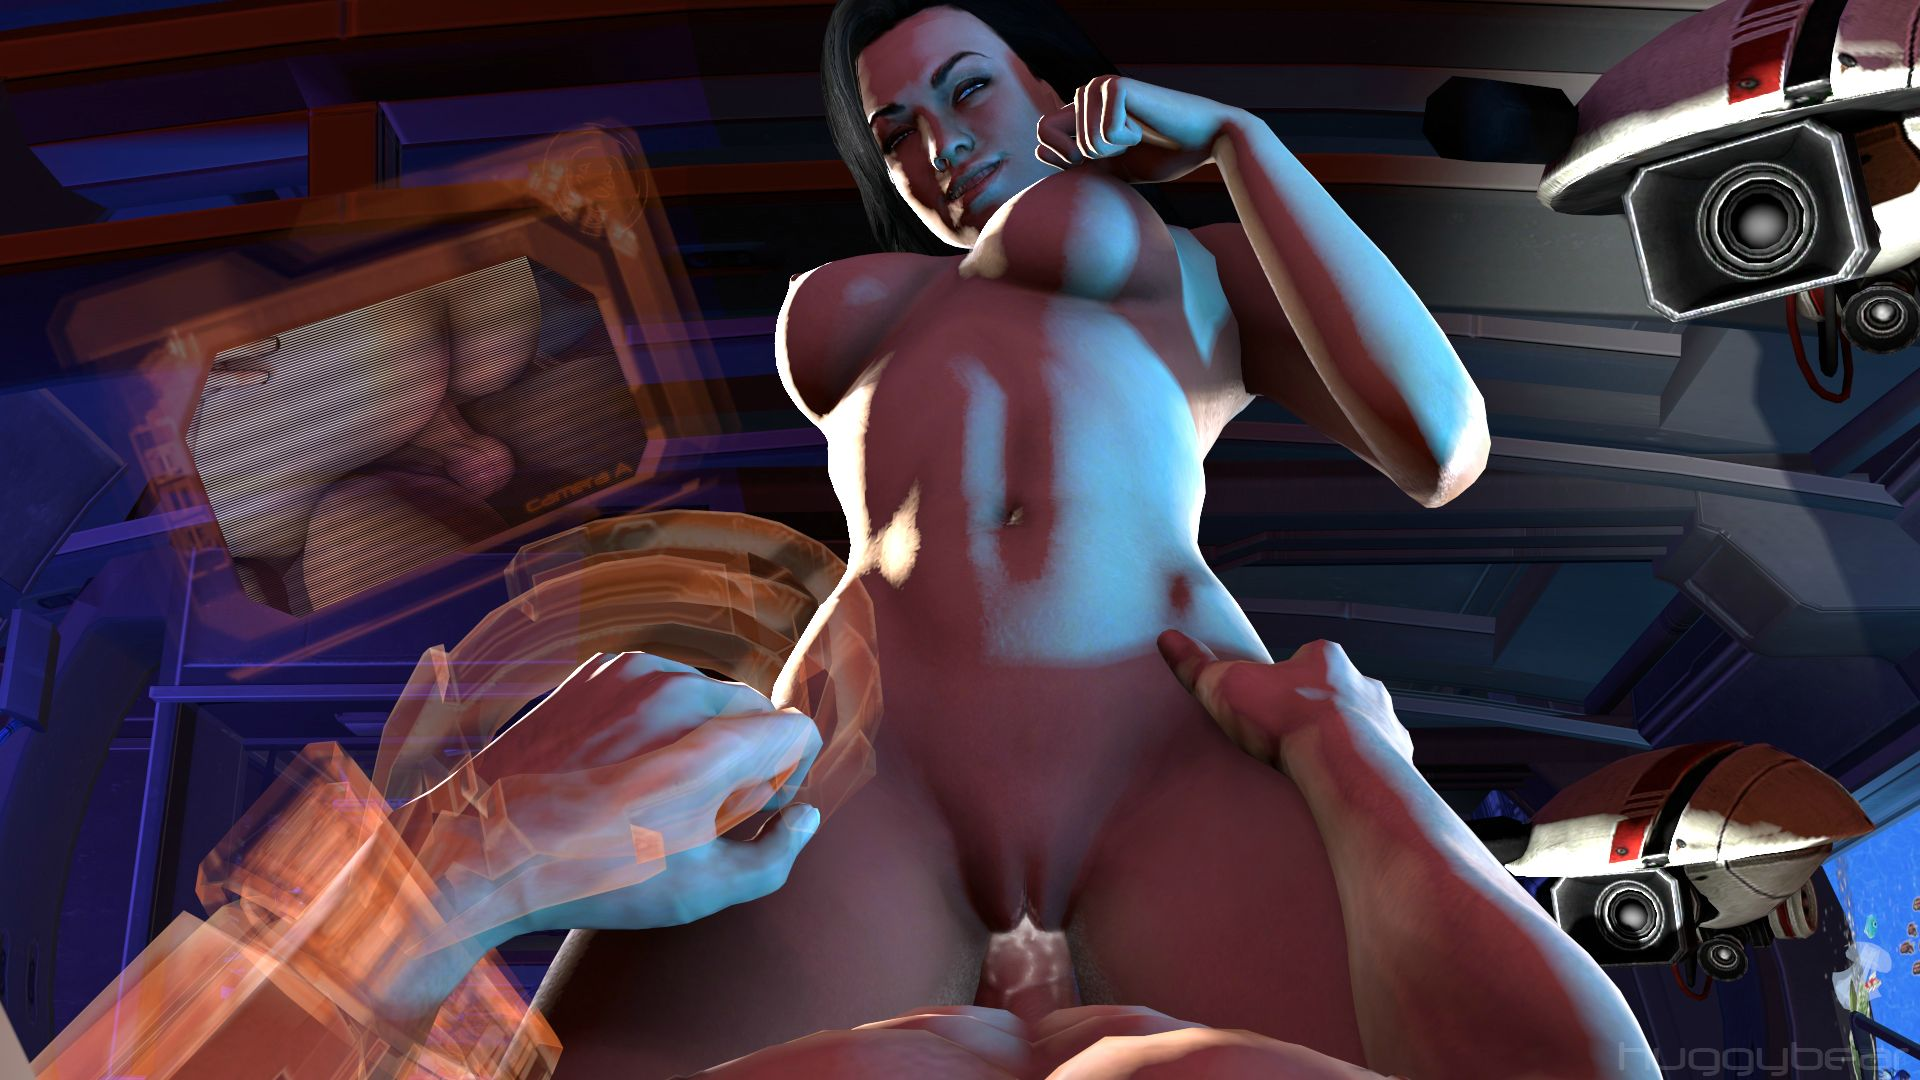 Mass effect miranda porn sex xxx 3d porn gallery